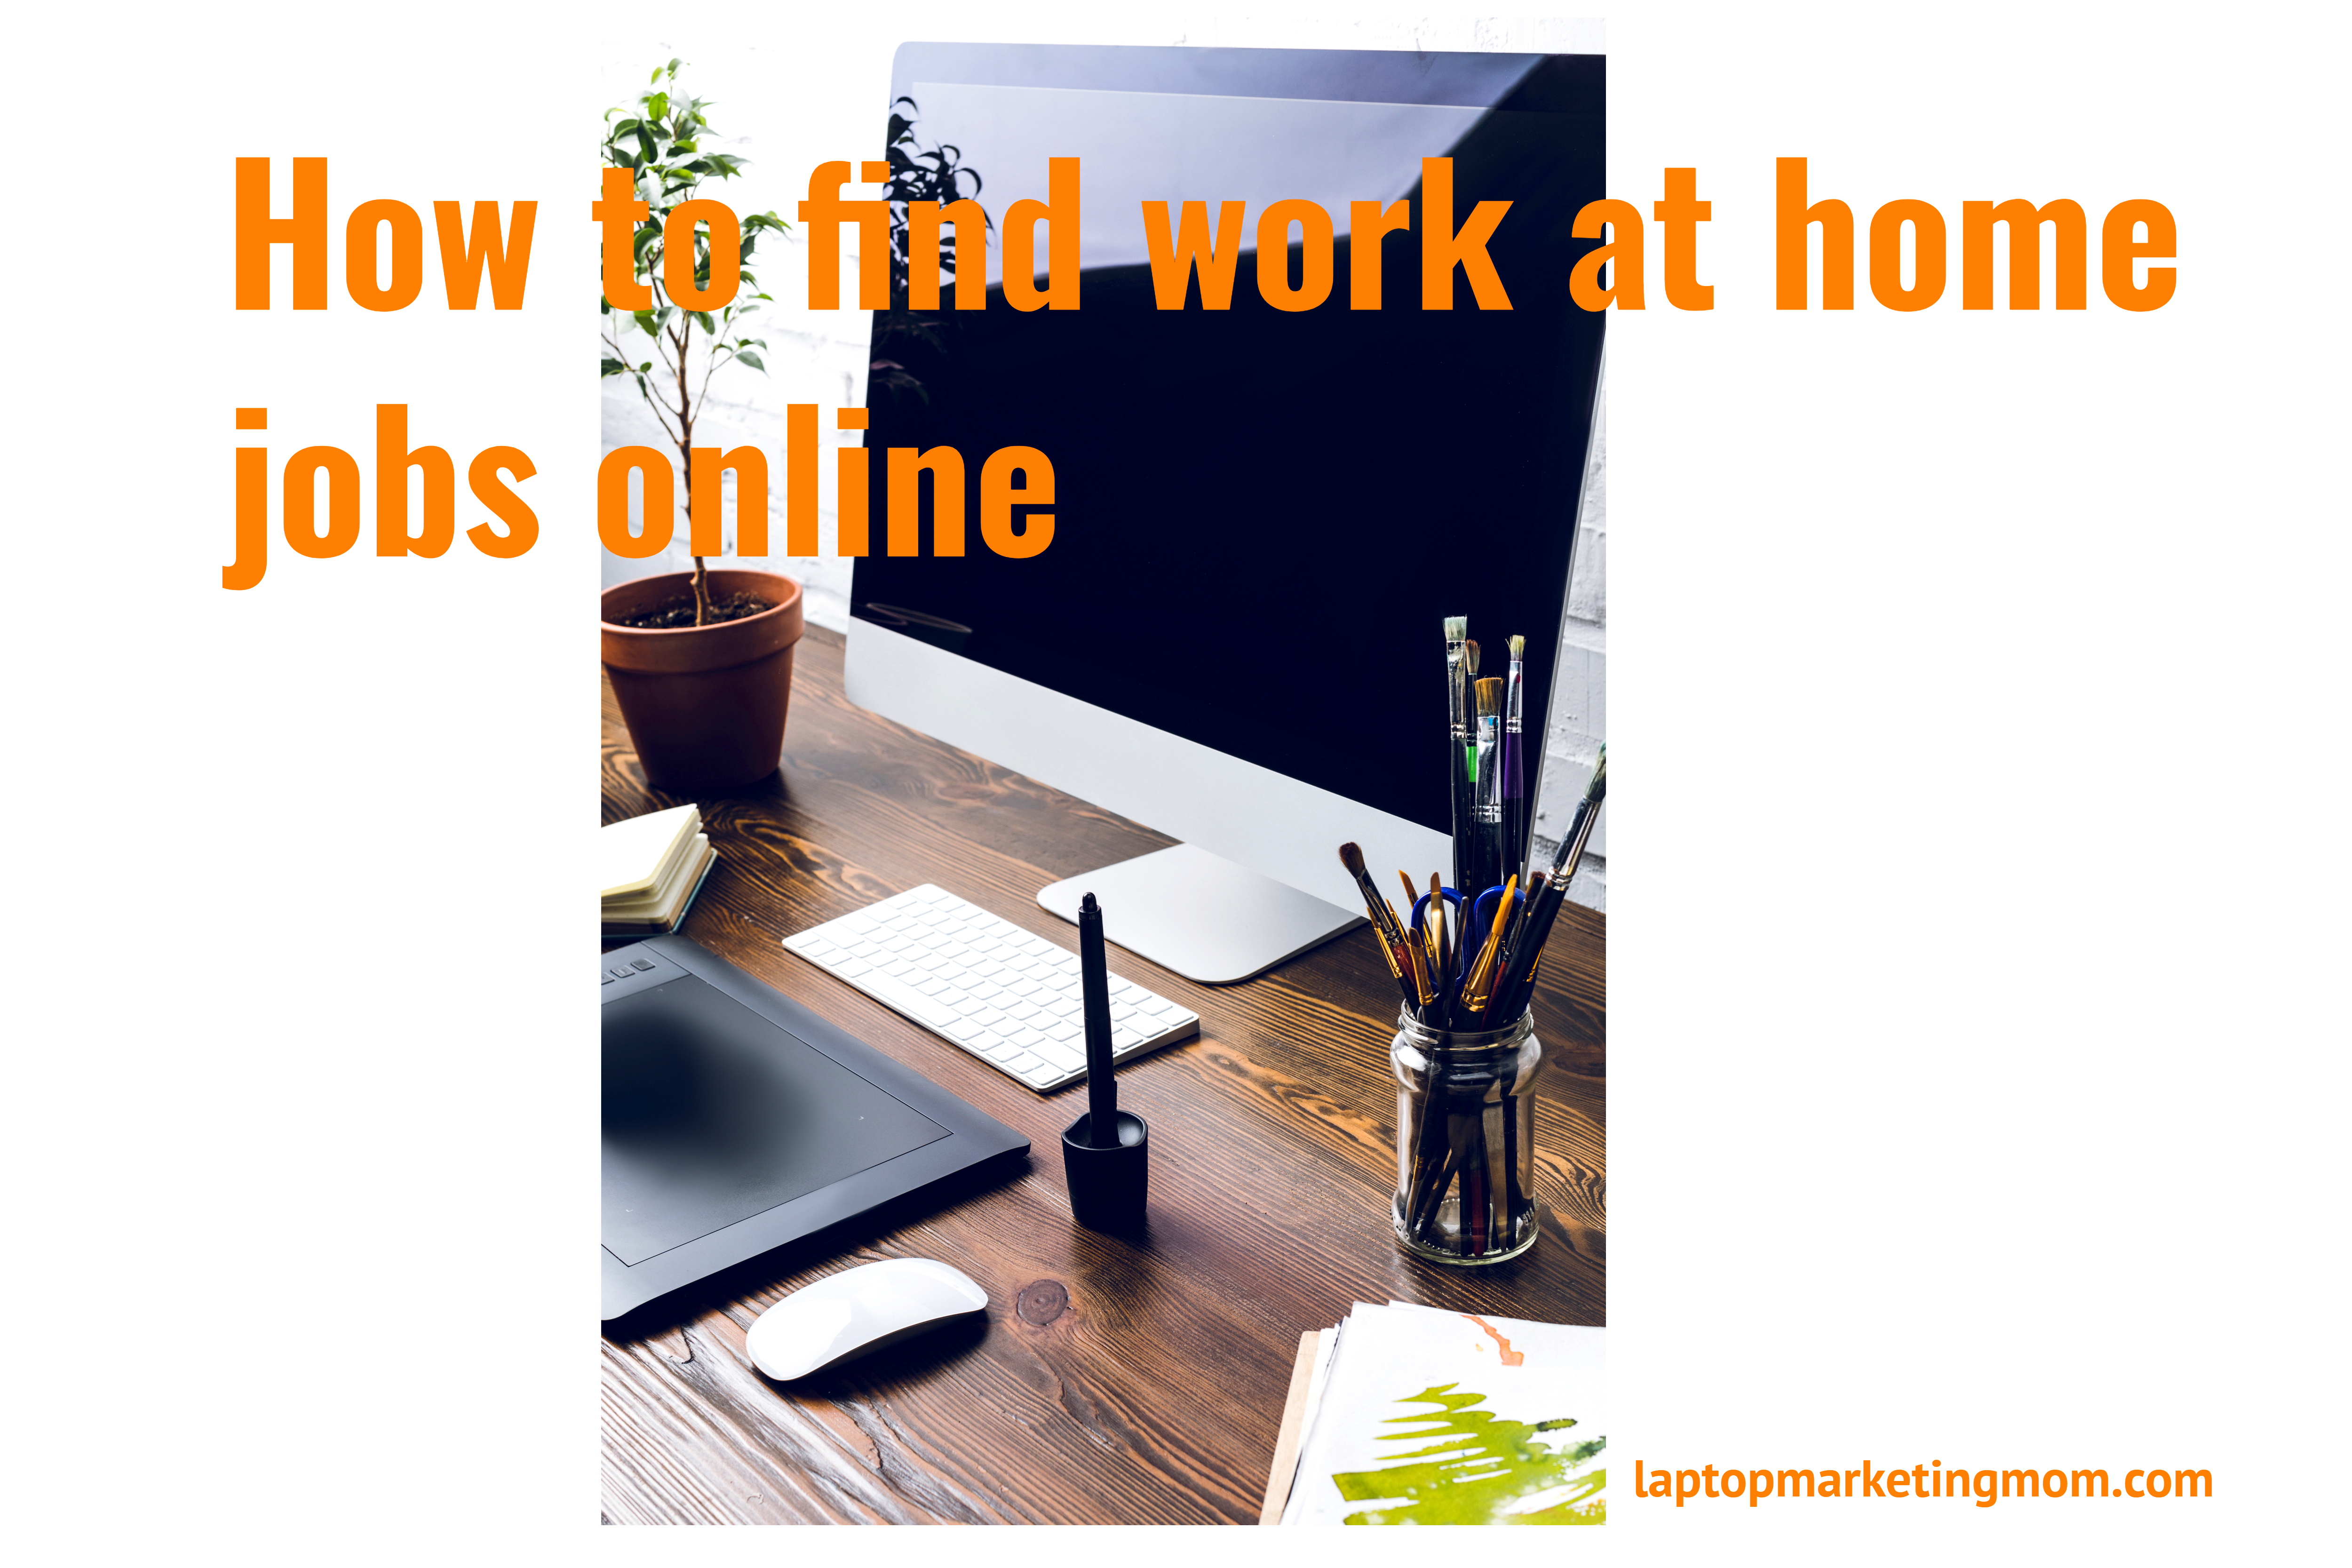 How to find work at home jobs online